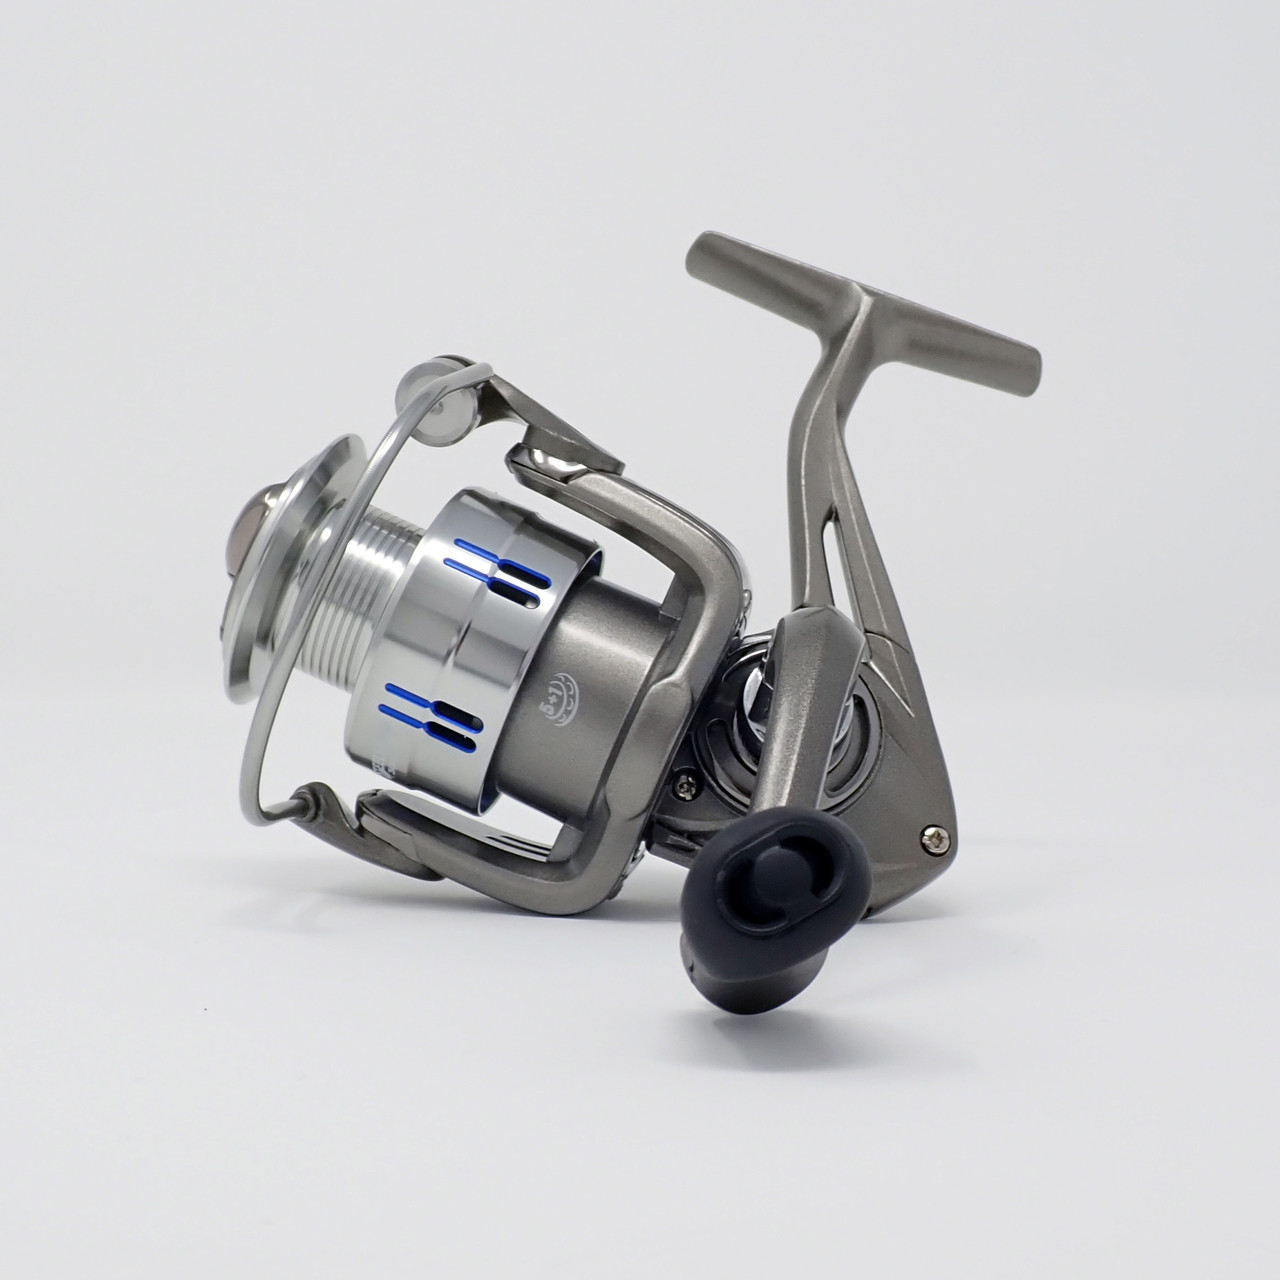 SteelShad 3000 Series Spinning Reel